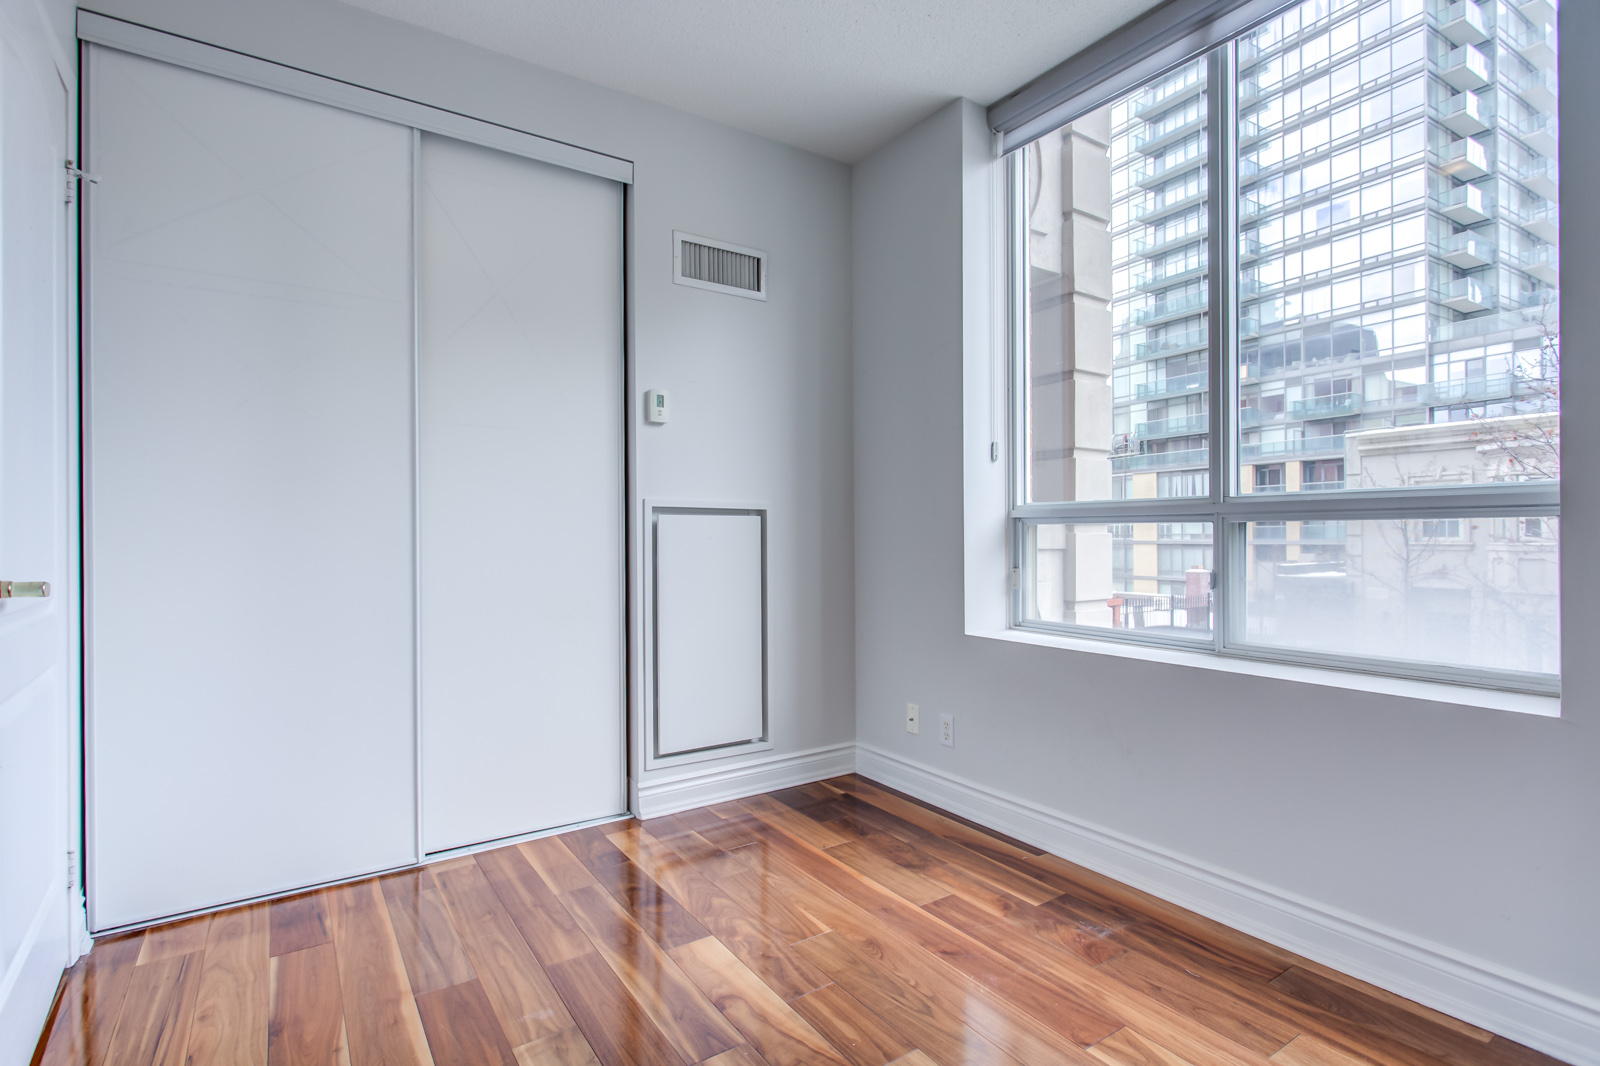 Small empty bedroom with shiny brown hardwood floors and large window showing building.